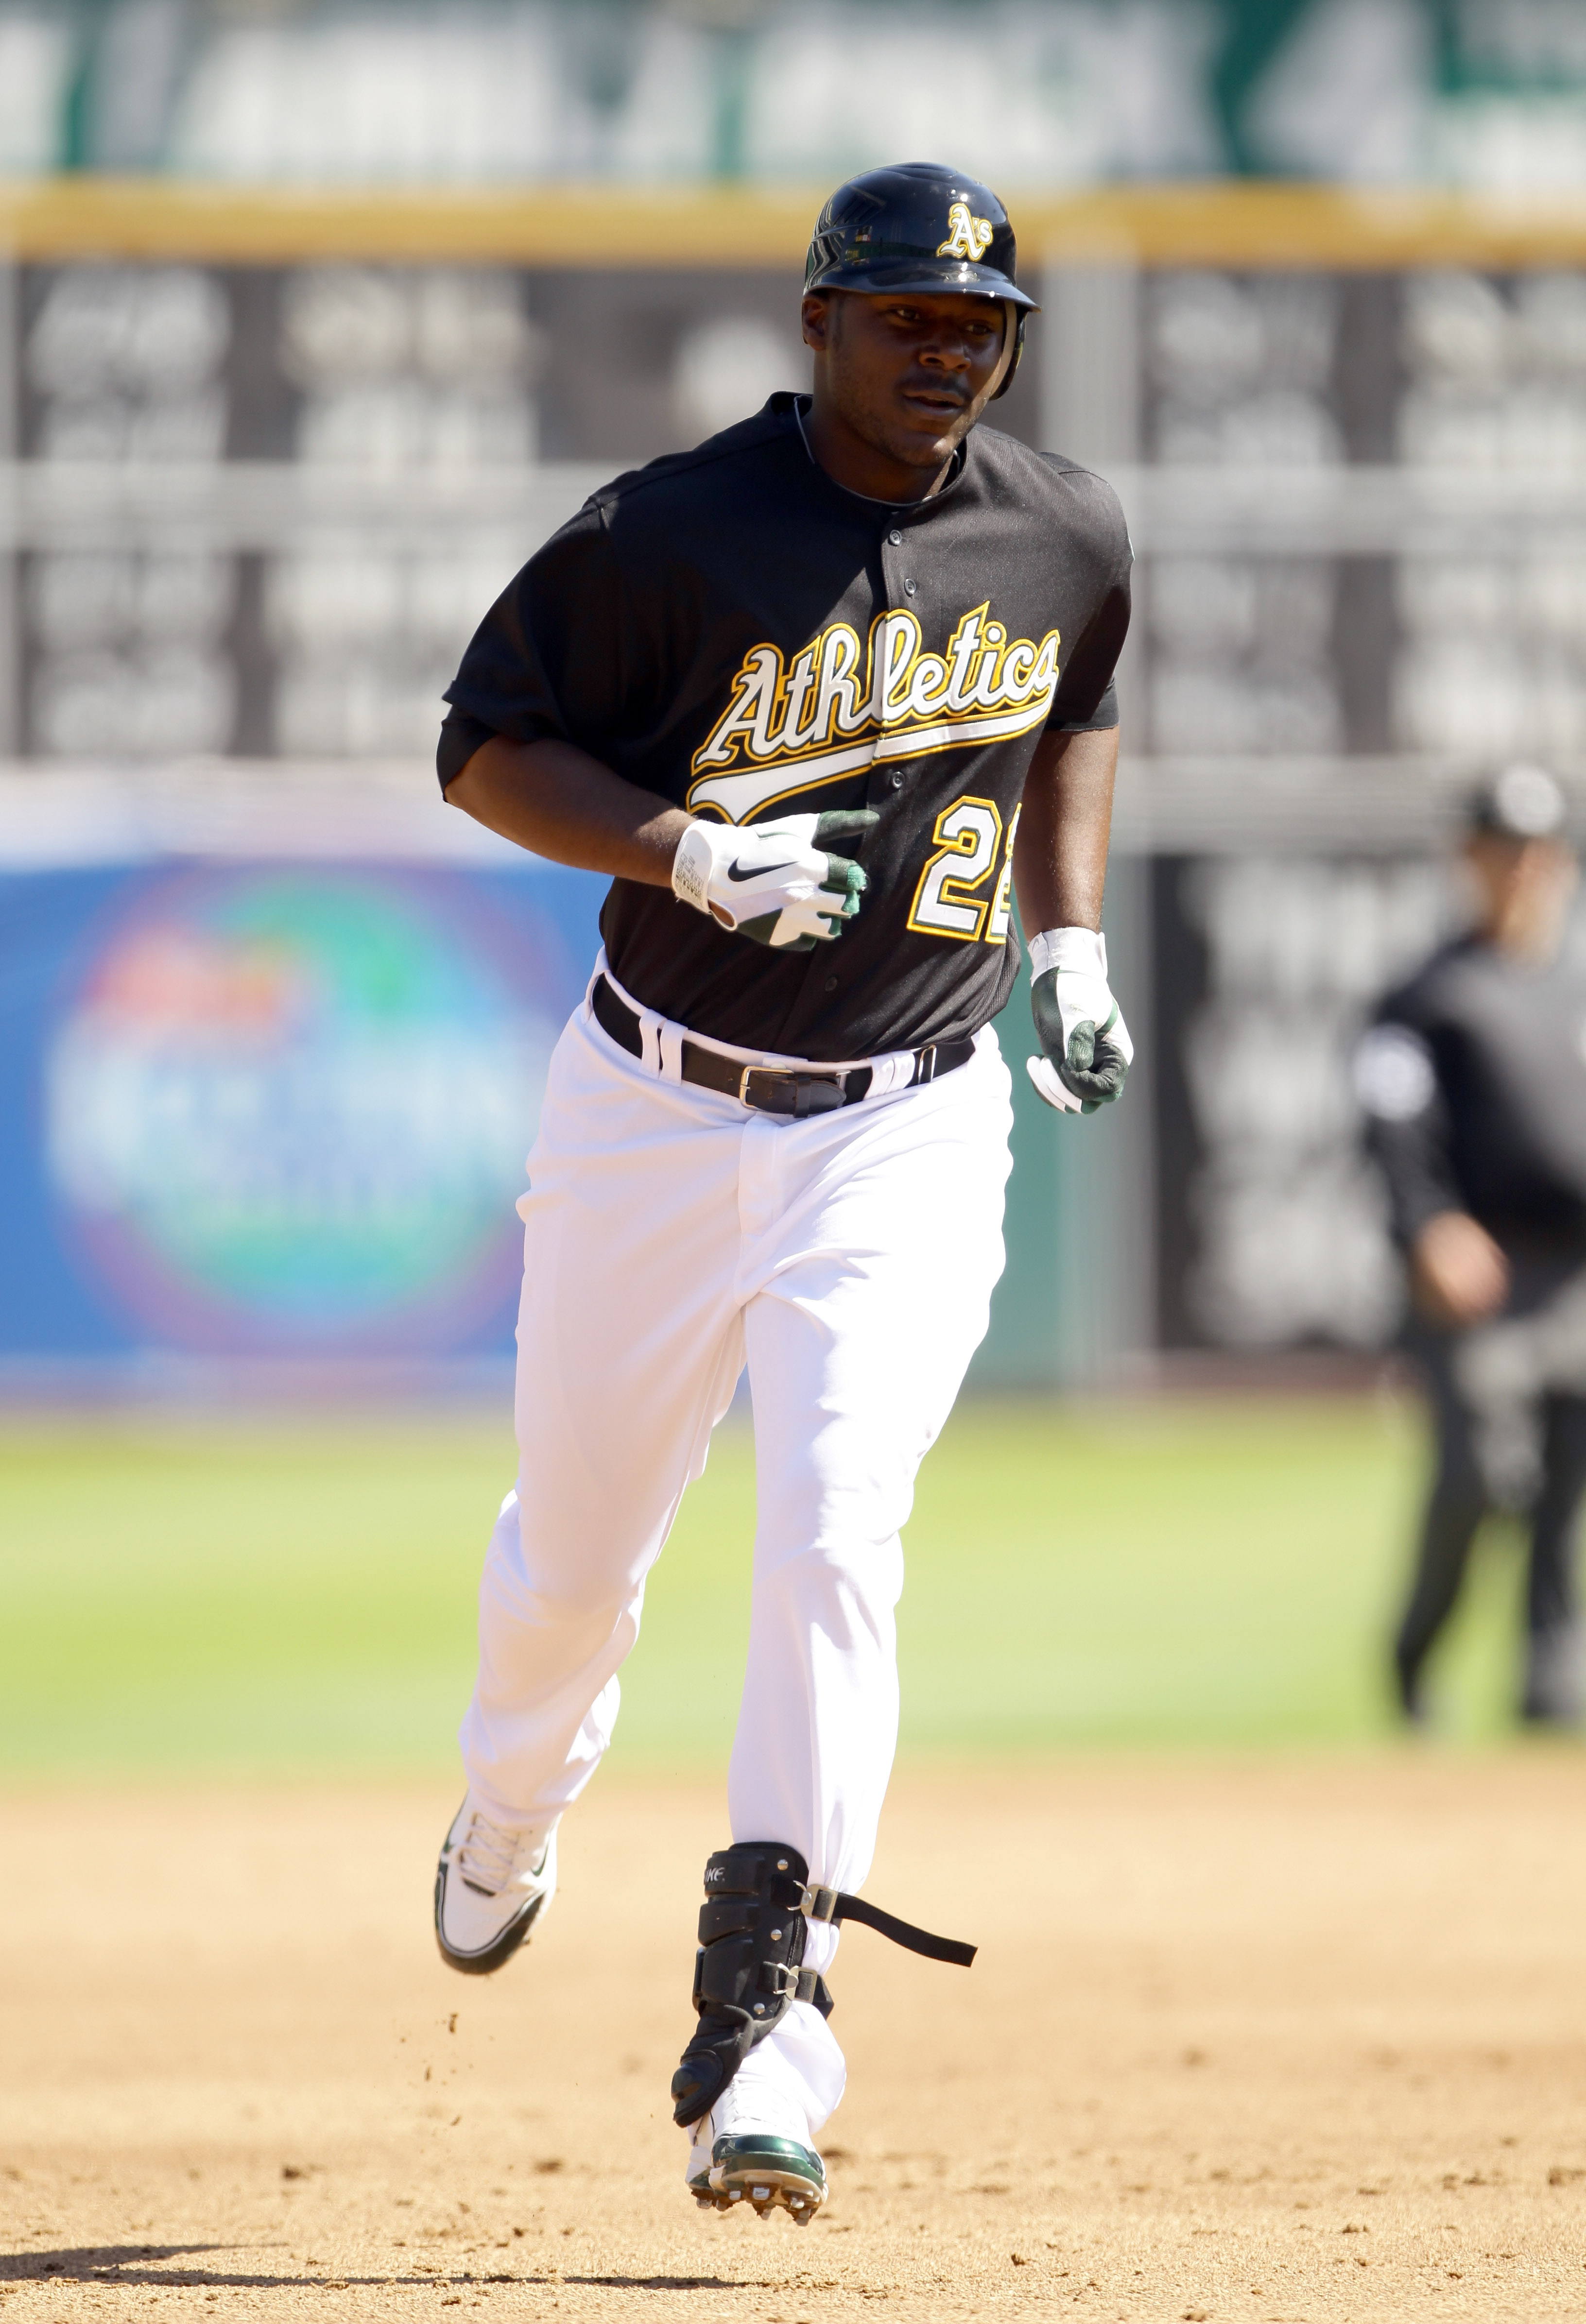 OAKLAND, CA - SEPTEMBER 22:  Chris Carter #22 of the Oakland Athletics rounds the bases after hitting his first major league home run against the Chicago White Sox at the Oakland-Alameda County Coliseum on September 22, 2010 in Oakland, California.  (Phot